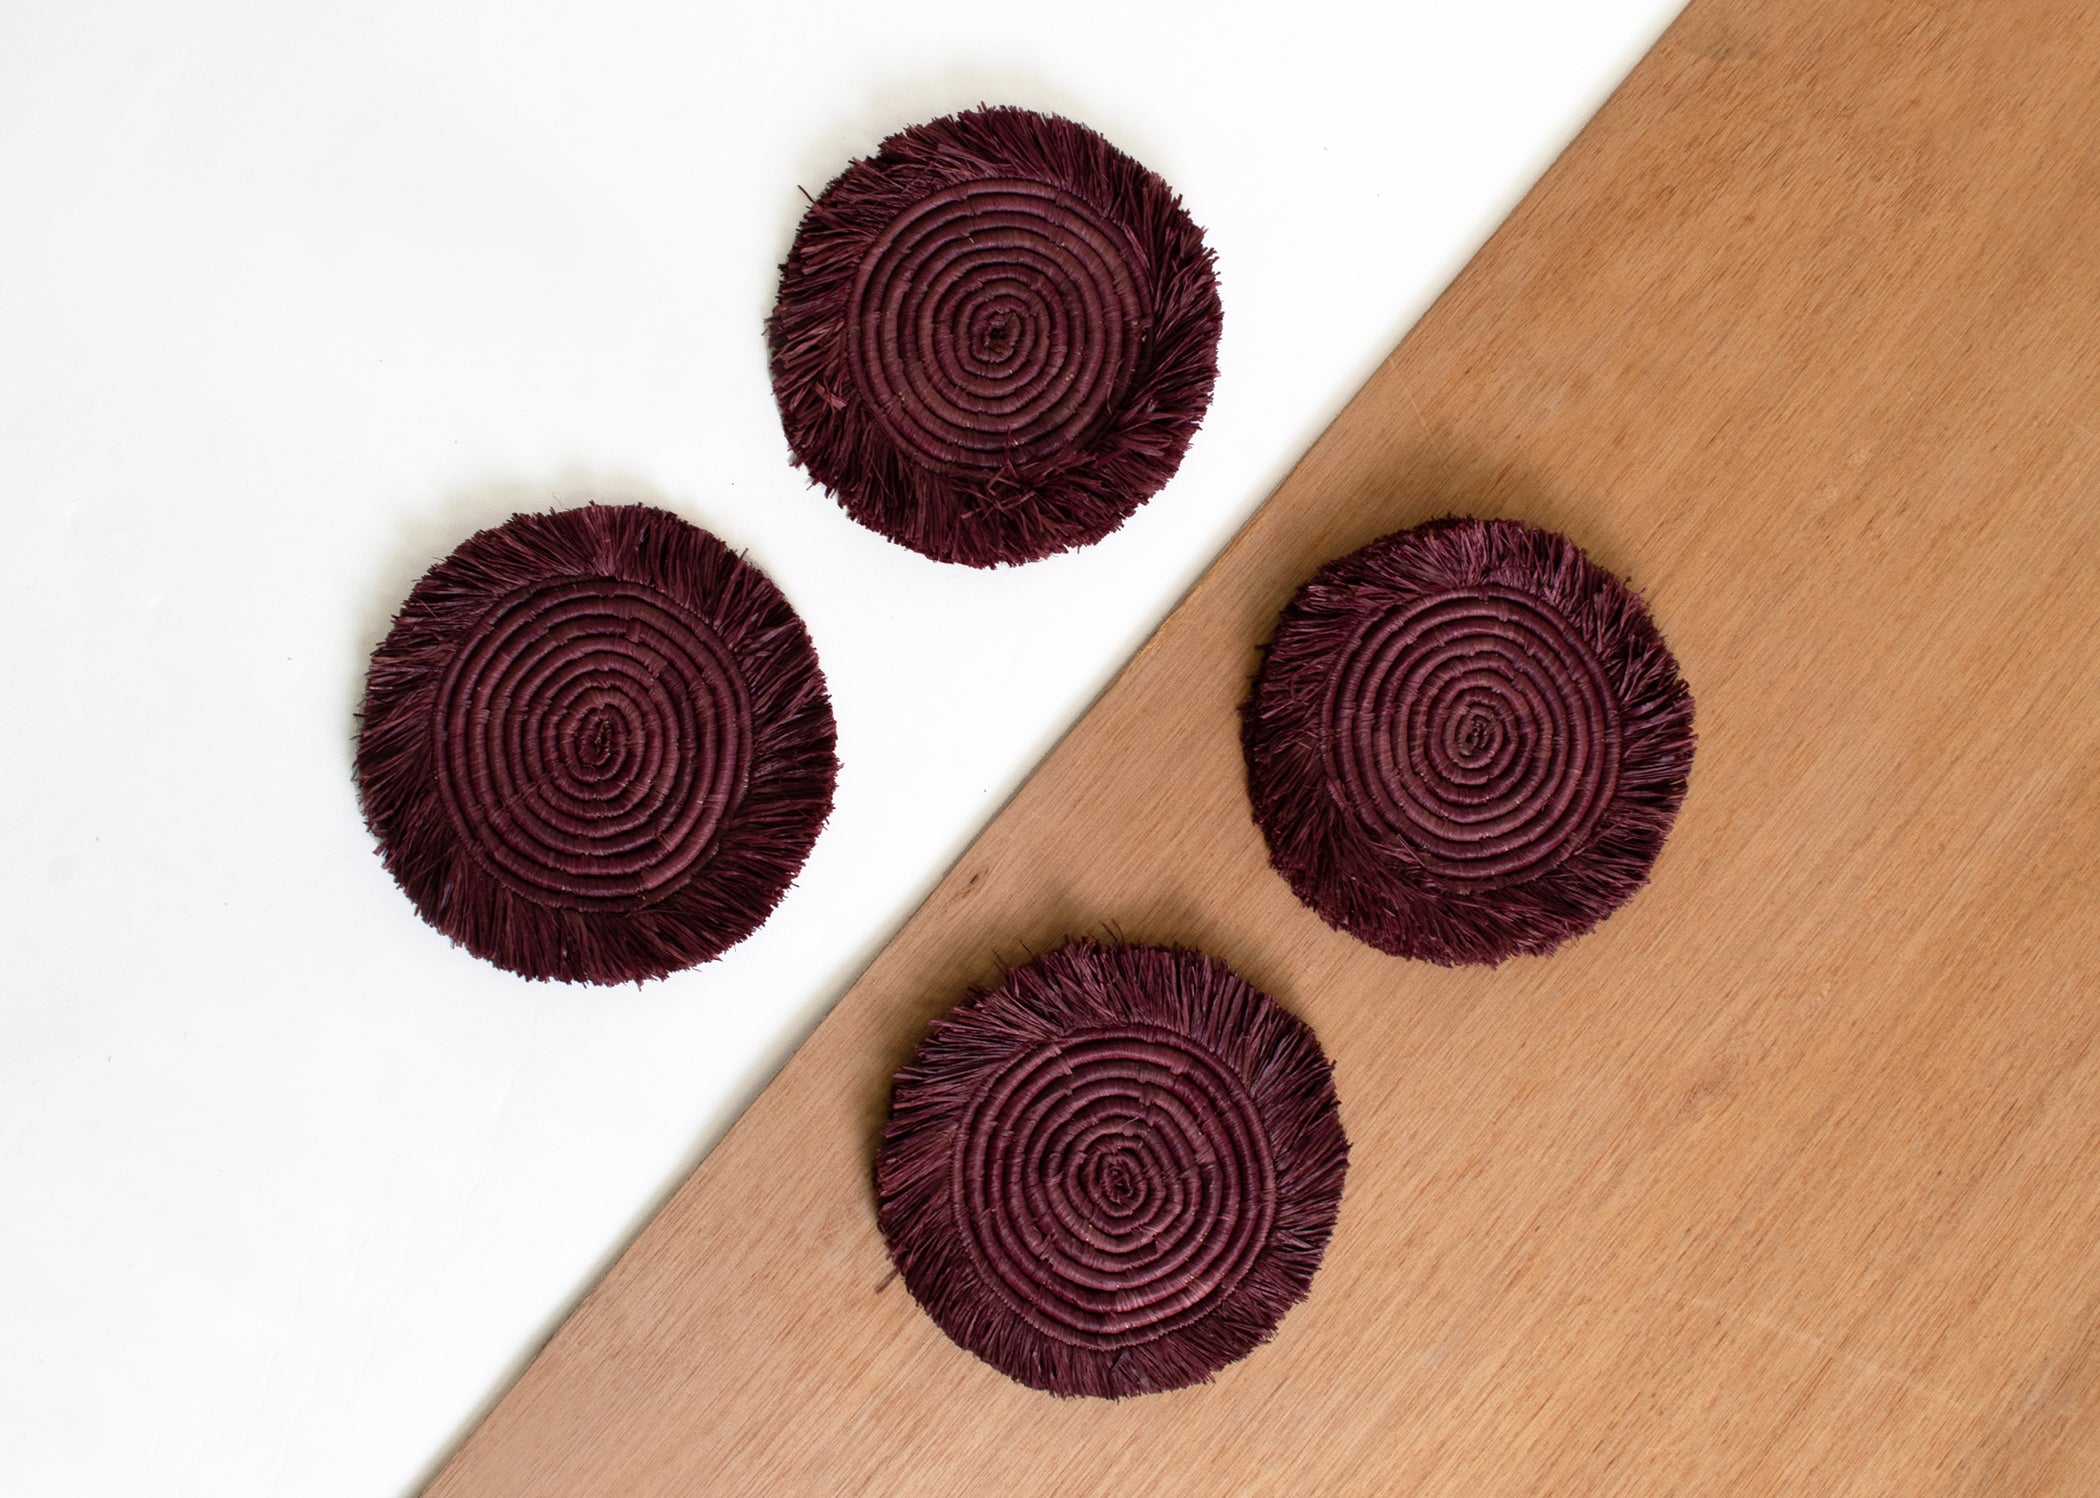 Burgundy Fringed Raffia Drink Coasters, Set of 4 - KAZI - Artisan made high quality home decor and wall art